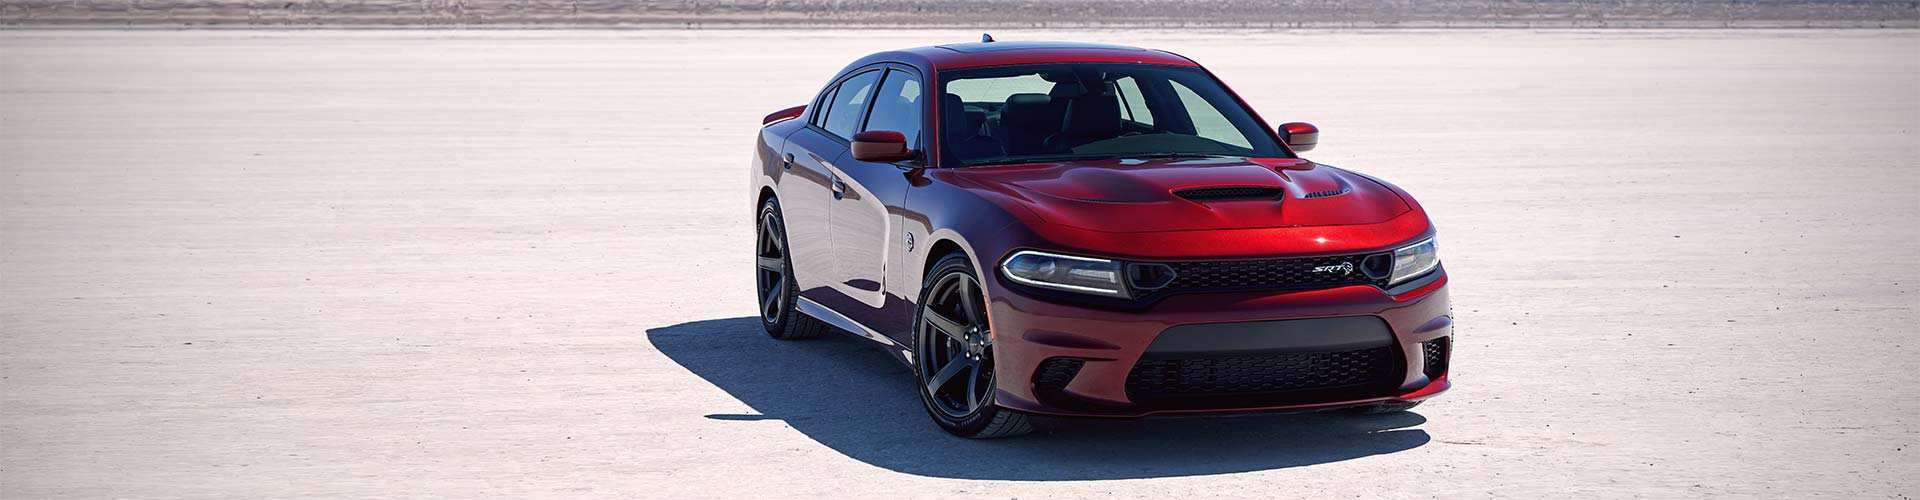 92 The 2019 Dodge Charger Srt 8 Prices